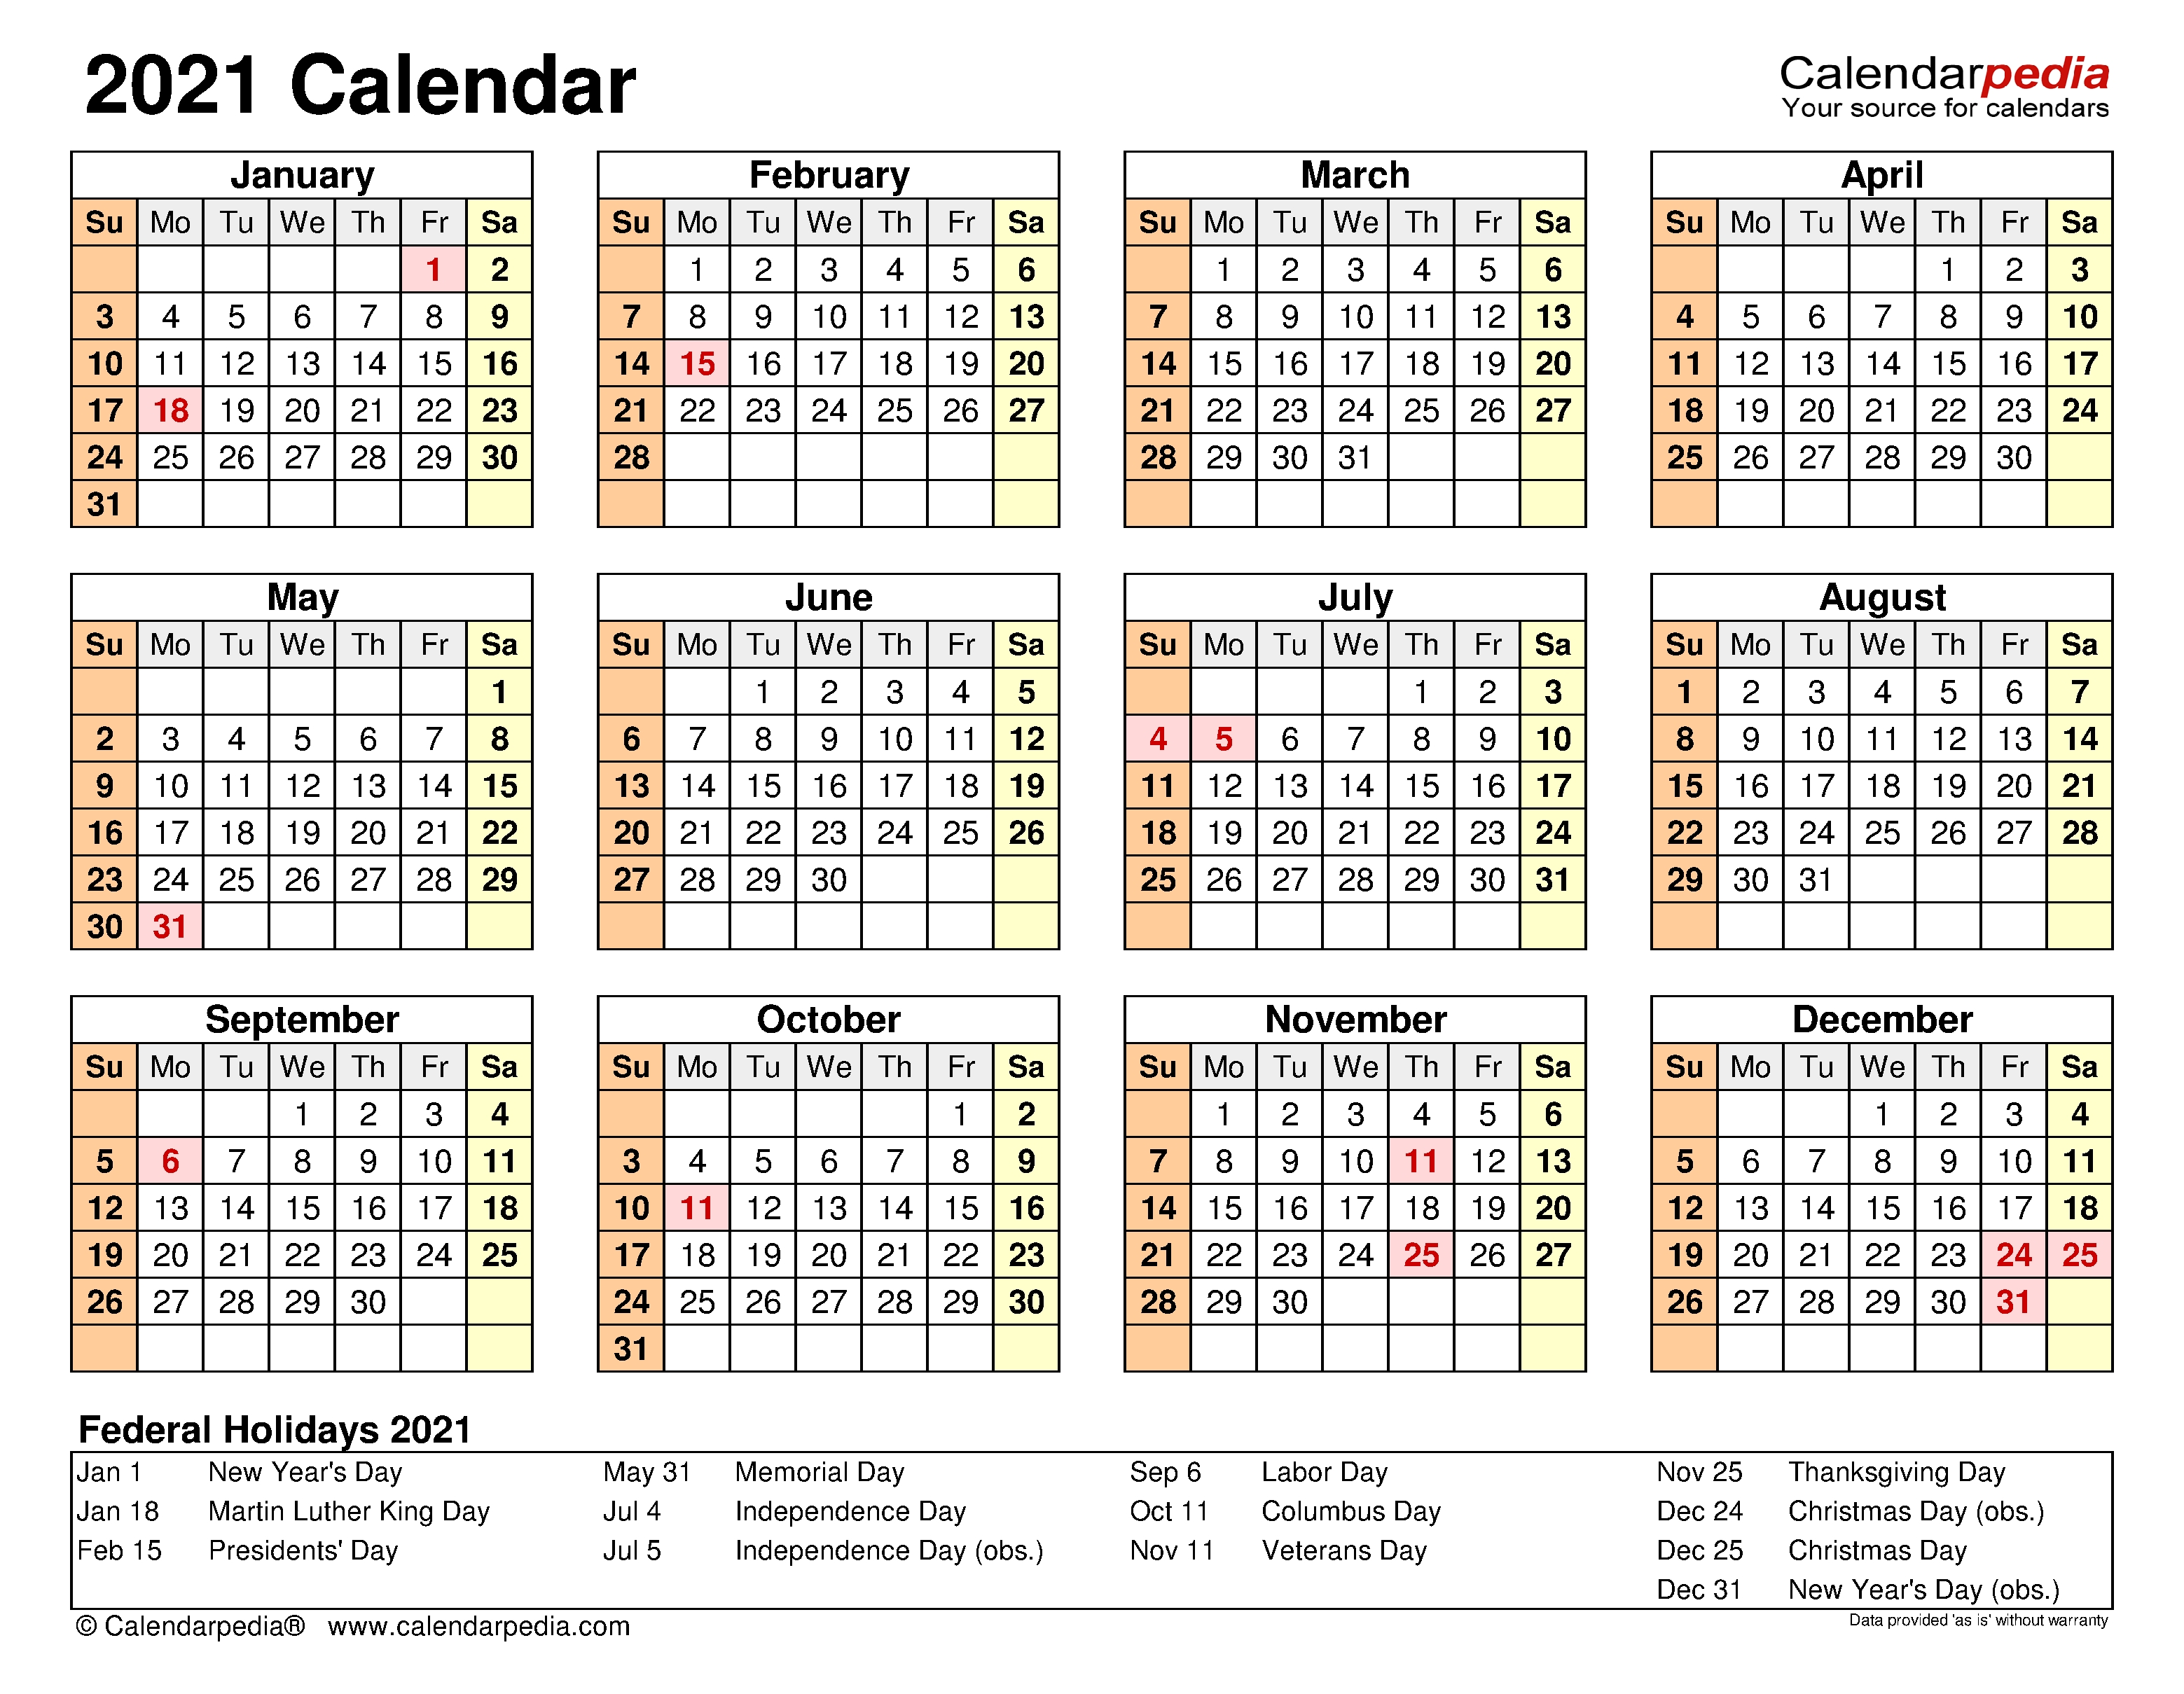 2021 Calendar - Free Printable Excel Templates - Calendarpedia Excel Yearly Calendar 2021